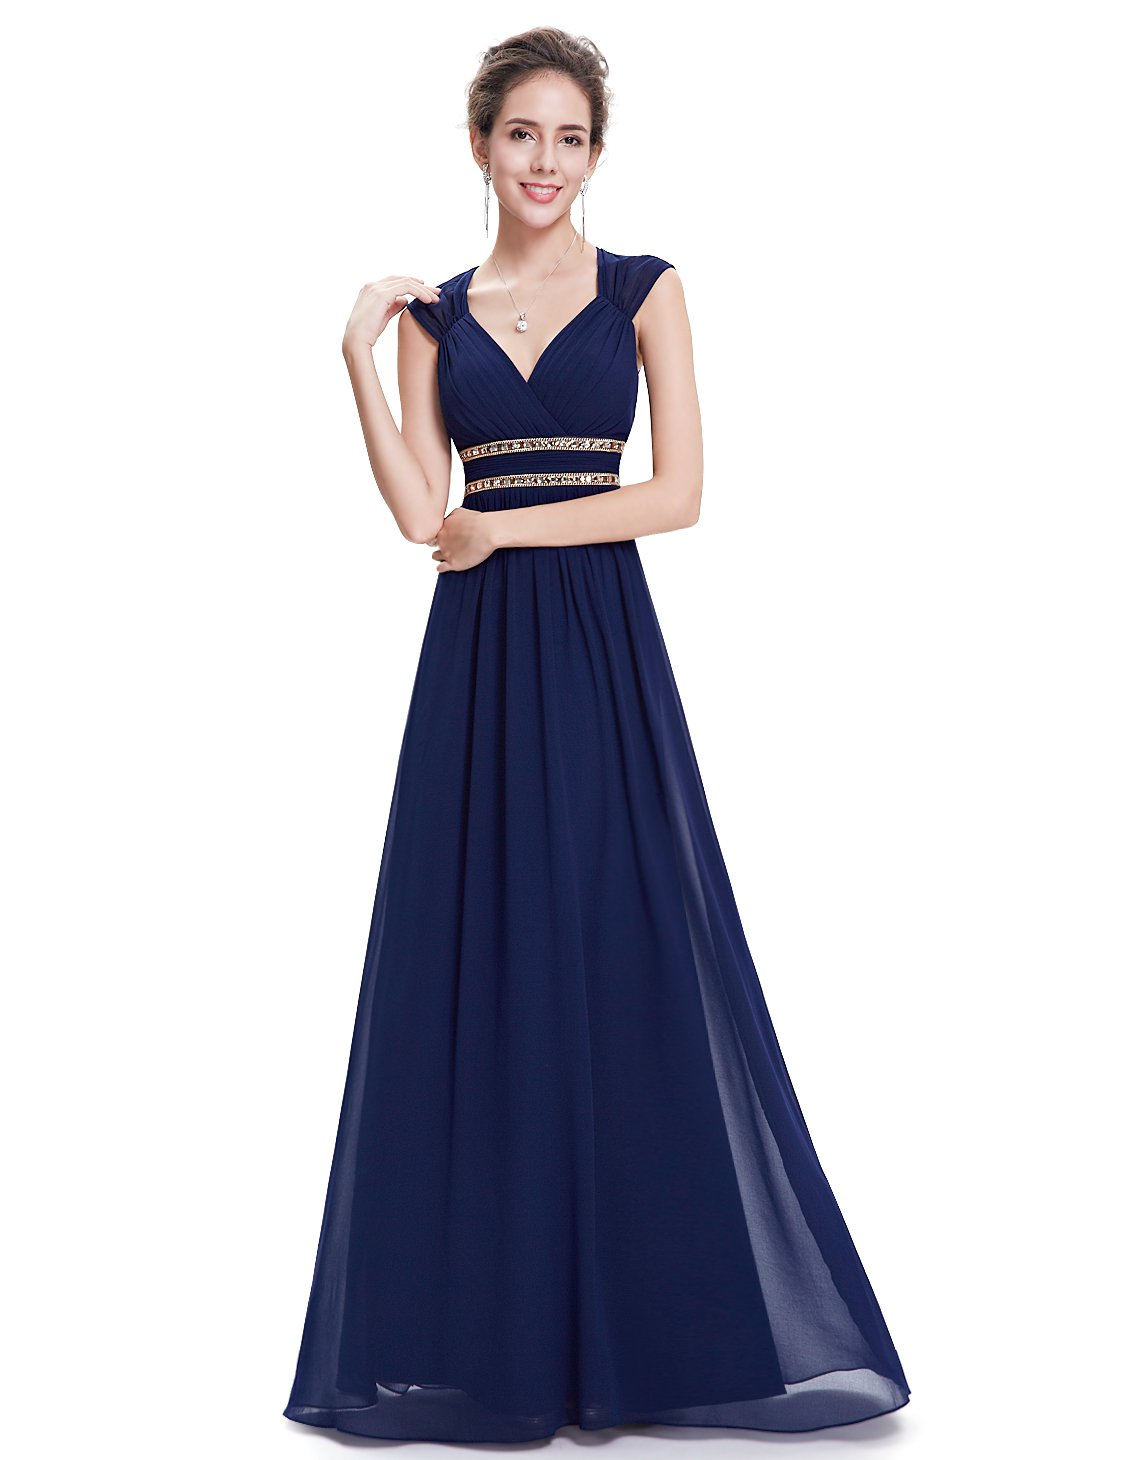 Ever-Pretty Womens Floor Length Beaded Grecian Style Military Ball Dress 6 US Navy Blue by Ever-Pretty (Image #3)